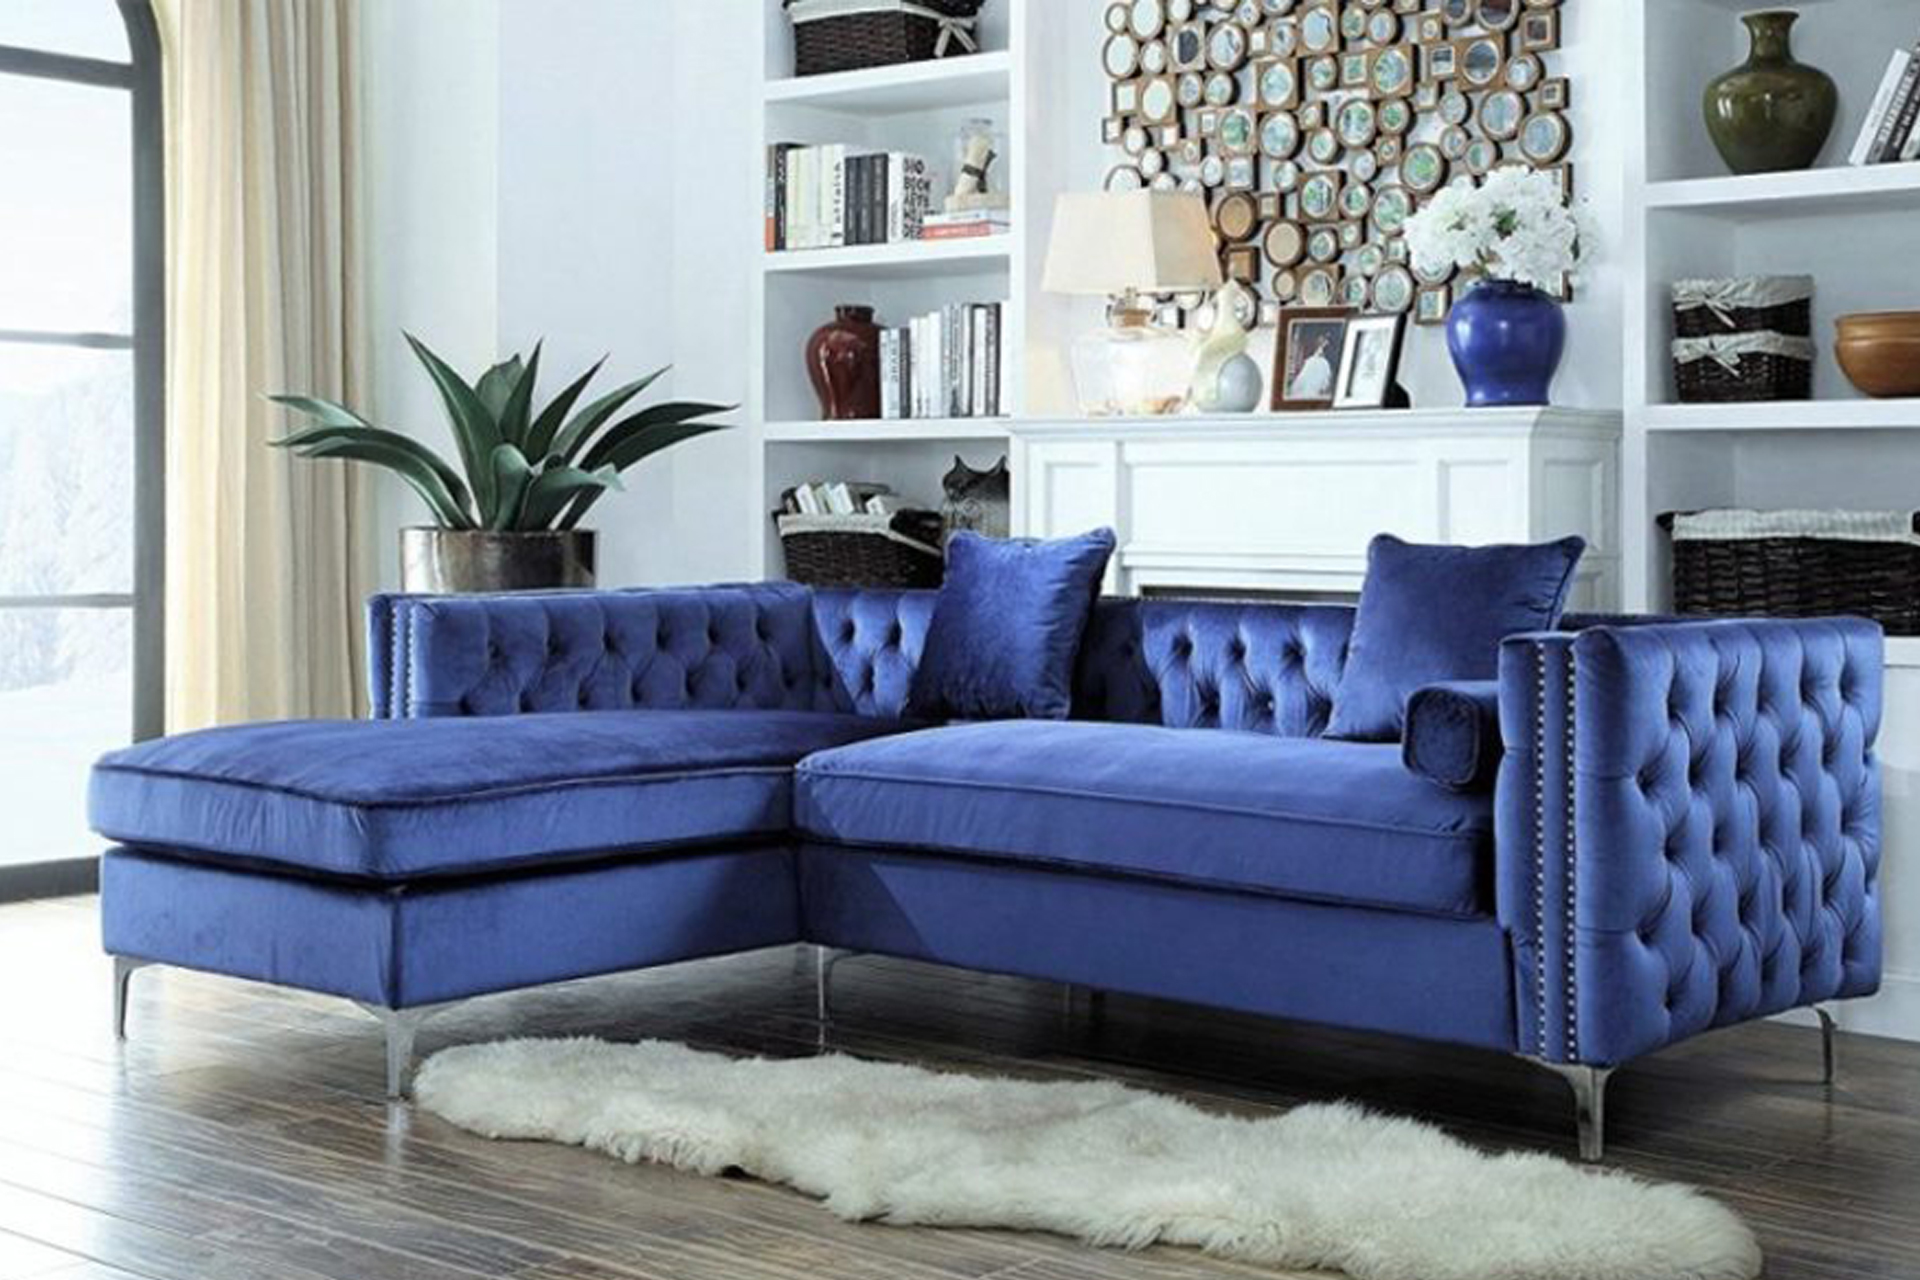 Reasons To Buy Wooden Indian Furniture In Australia